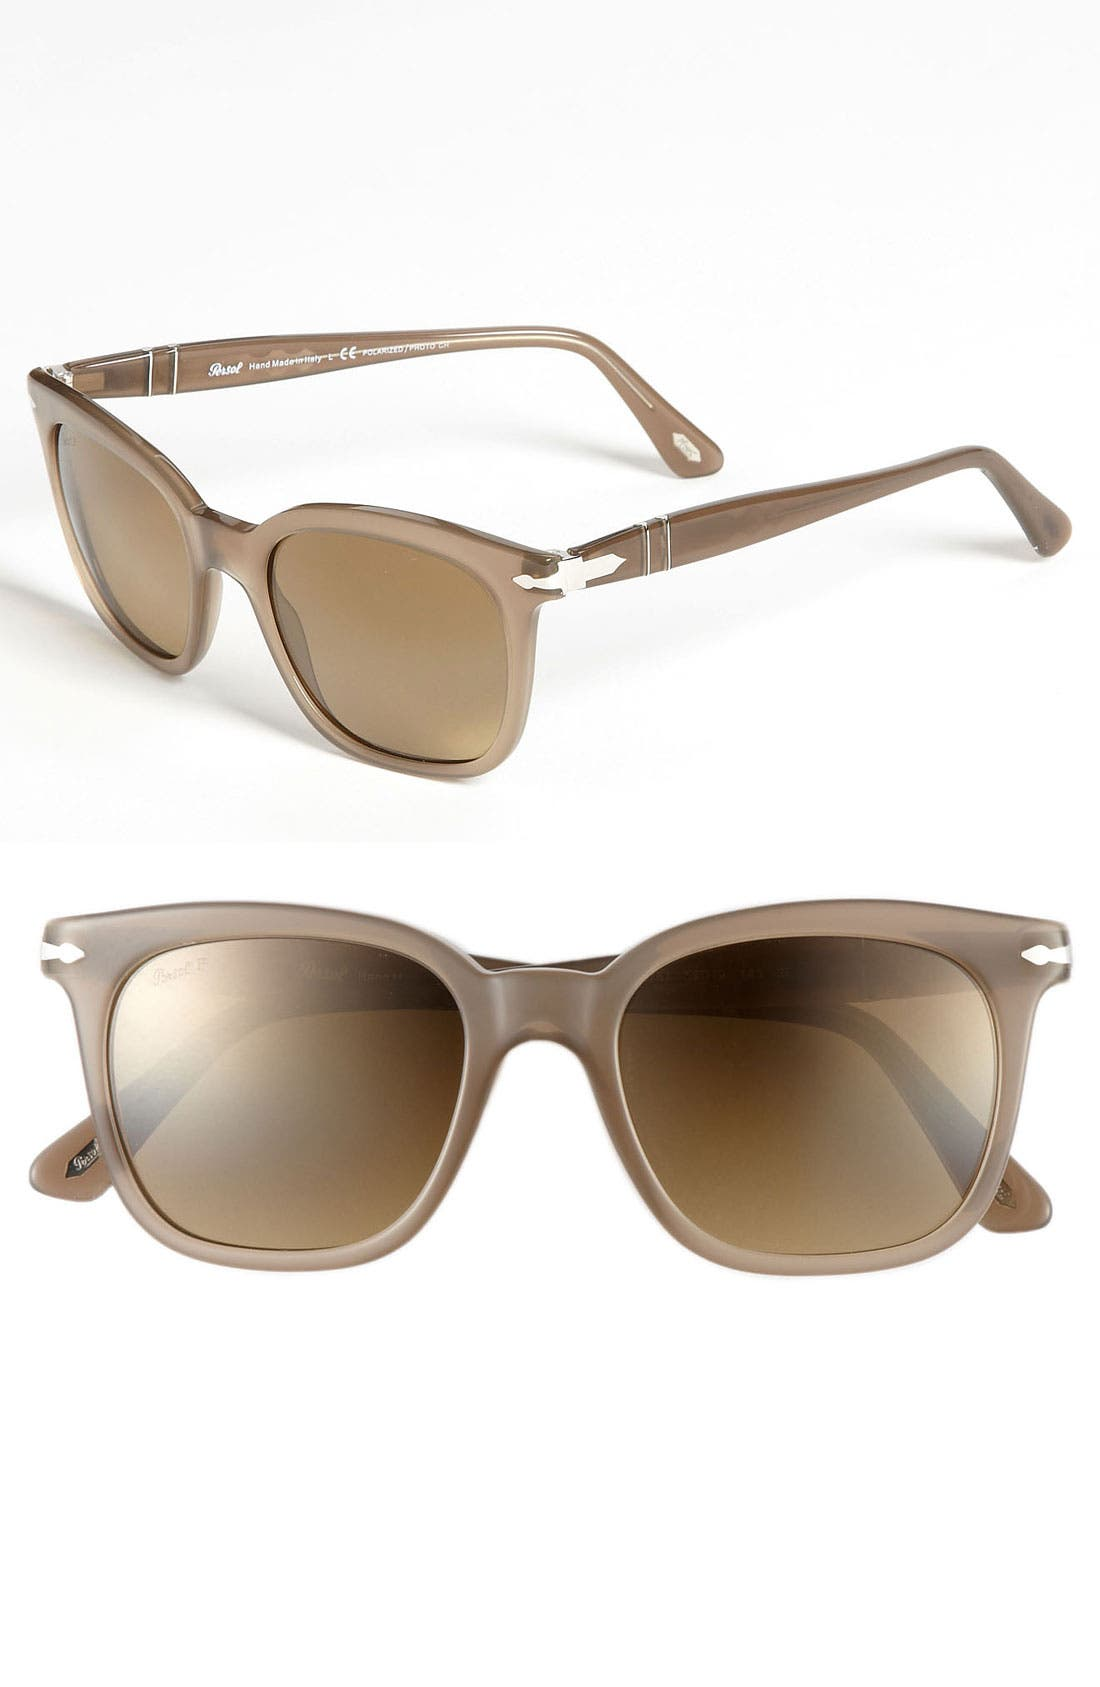 Alternate Image 1 Selected - Persol 52mm Polarized Sunglasses